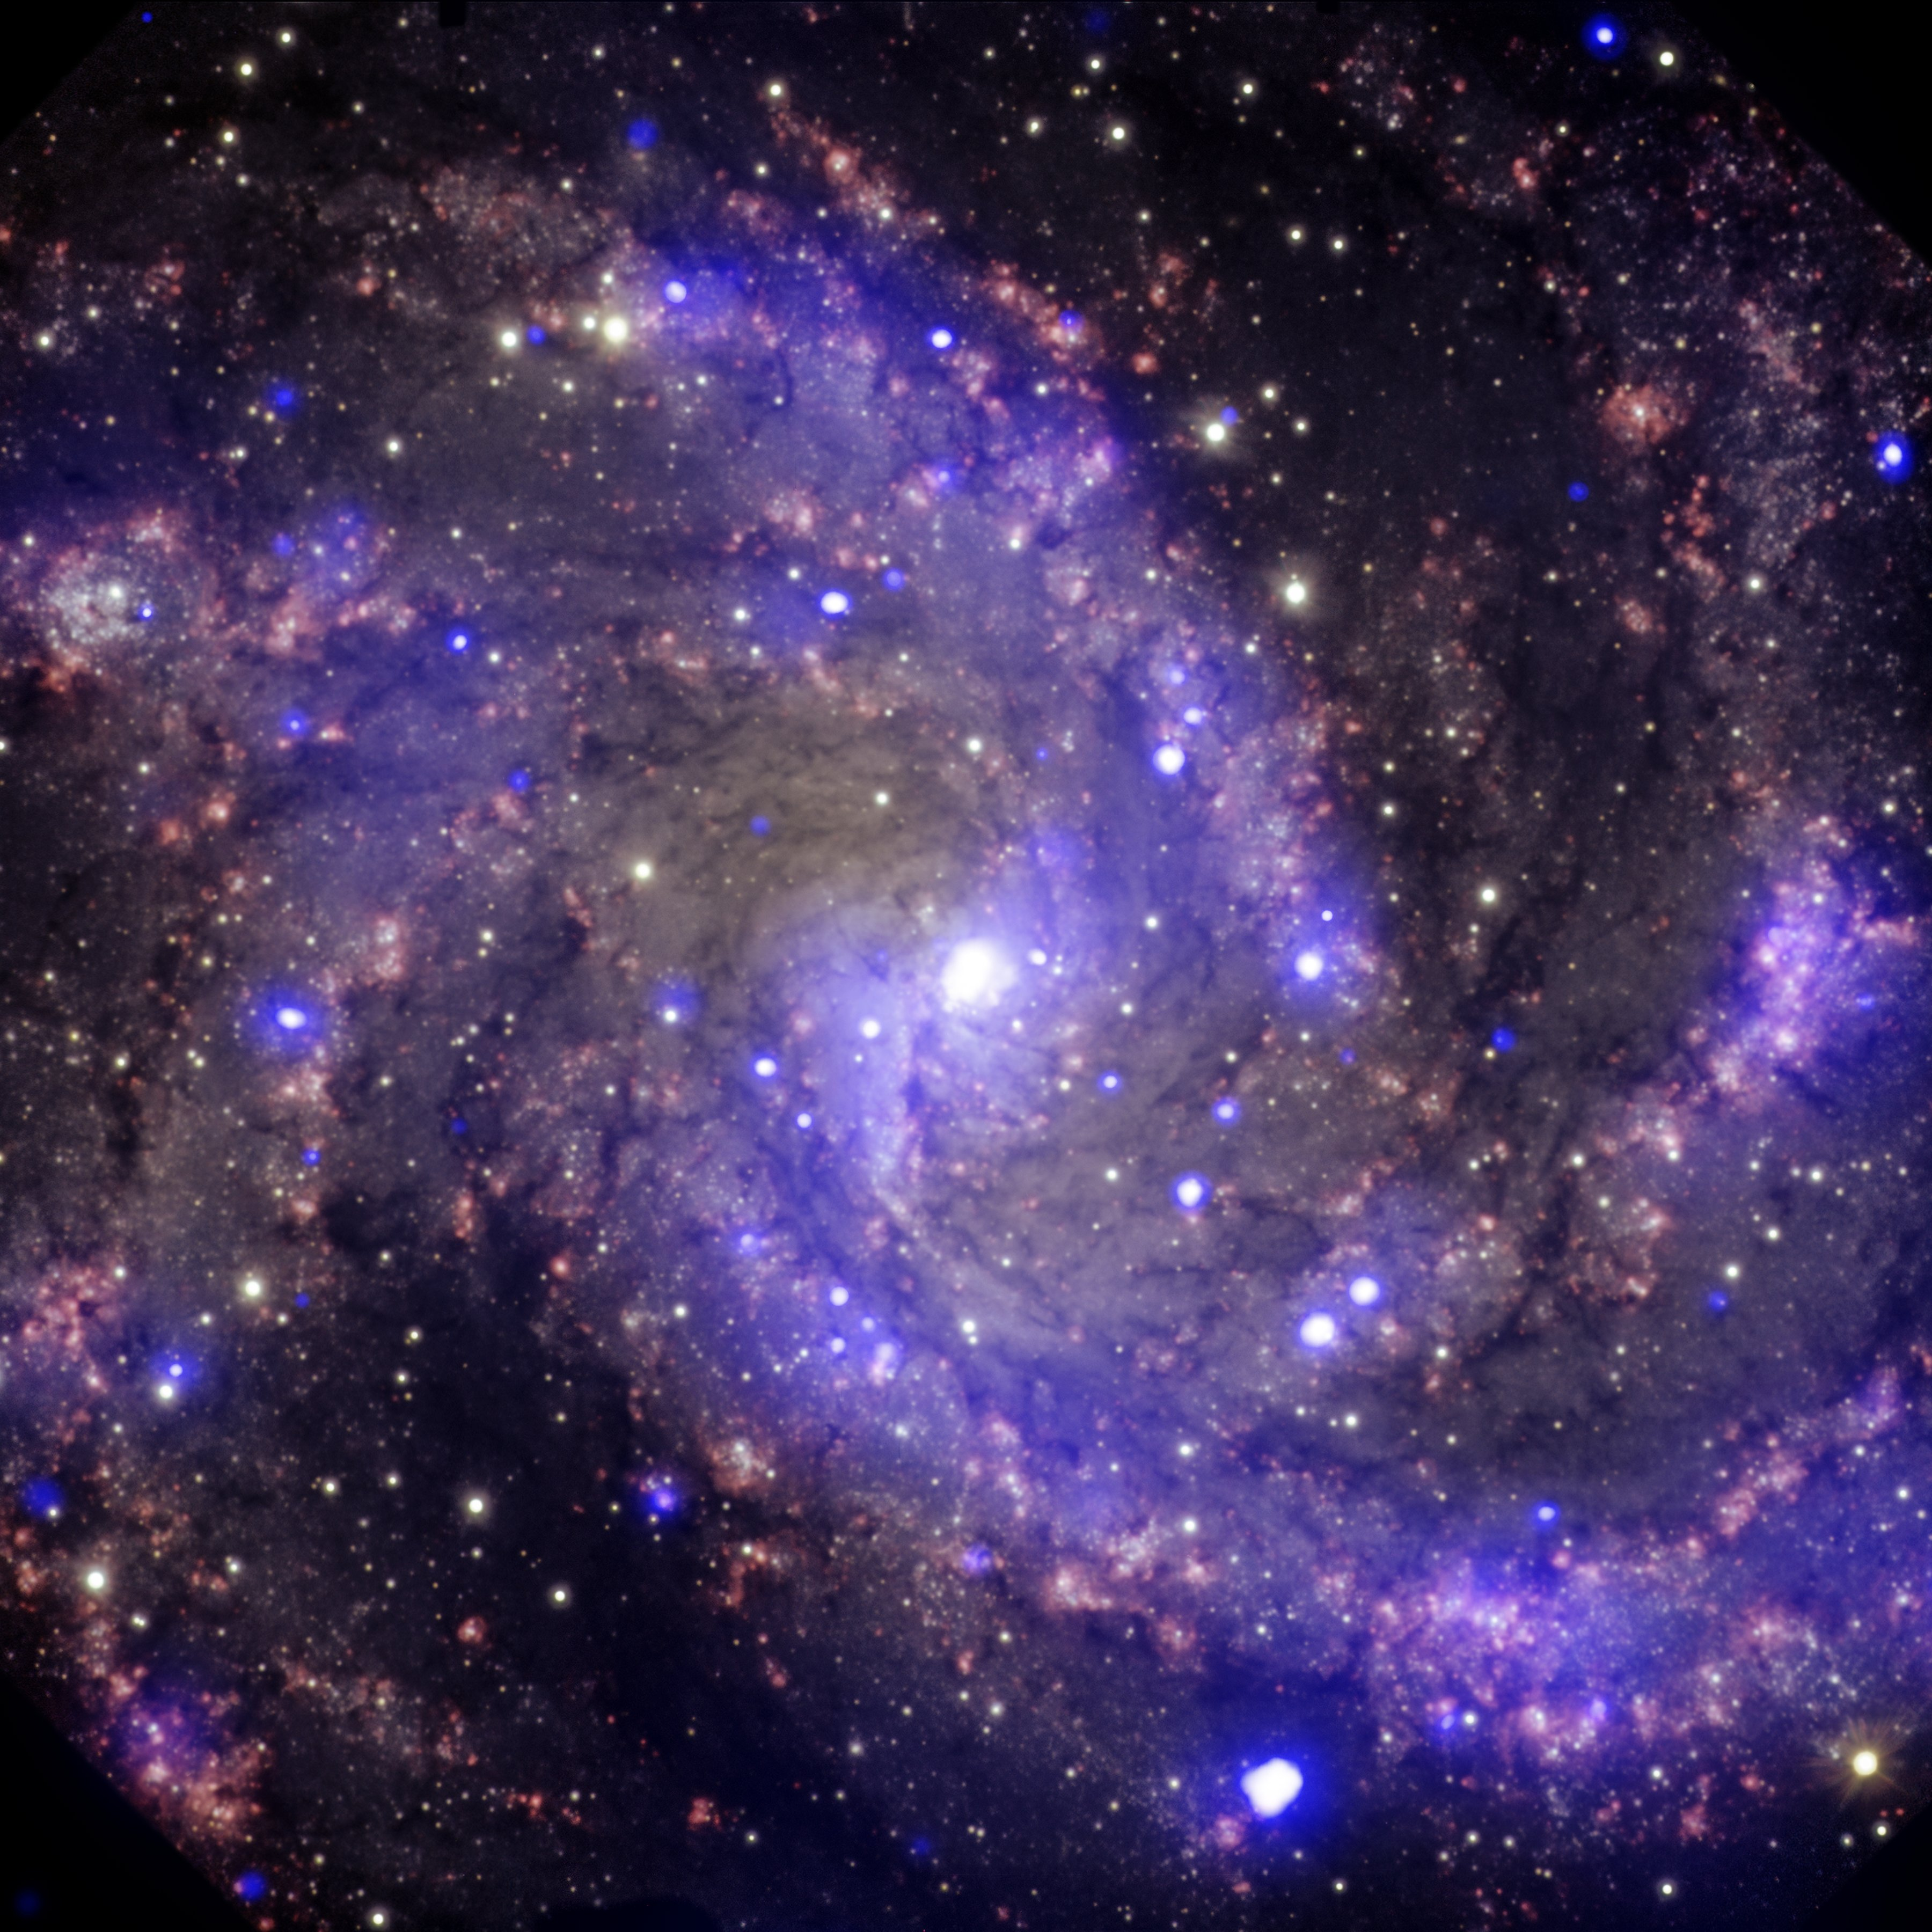 NGC 6946: The 'Fireworks Galaxy'